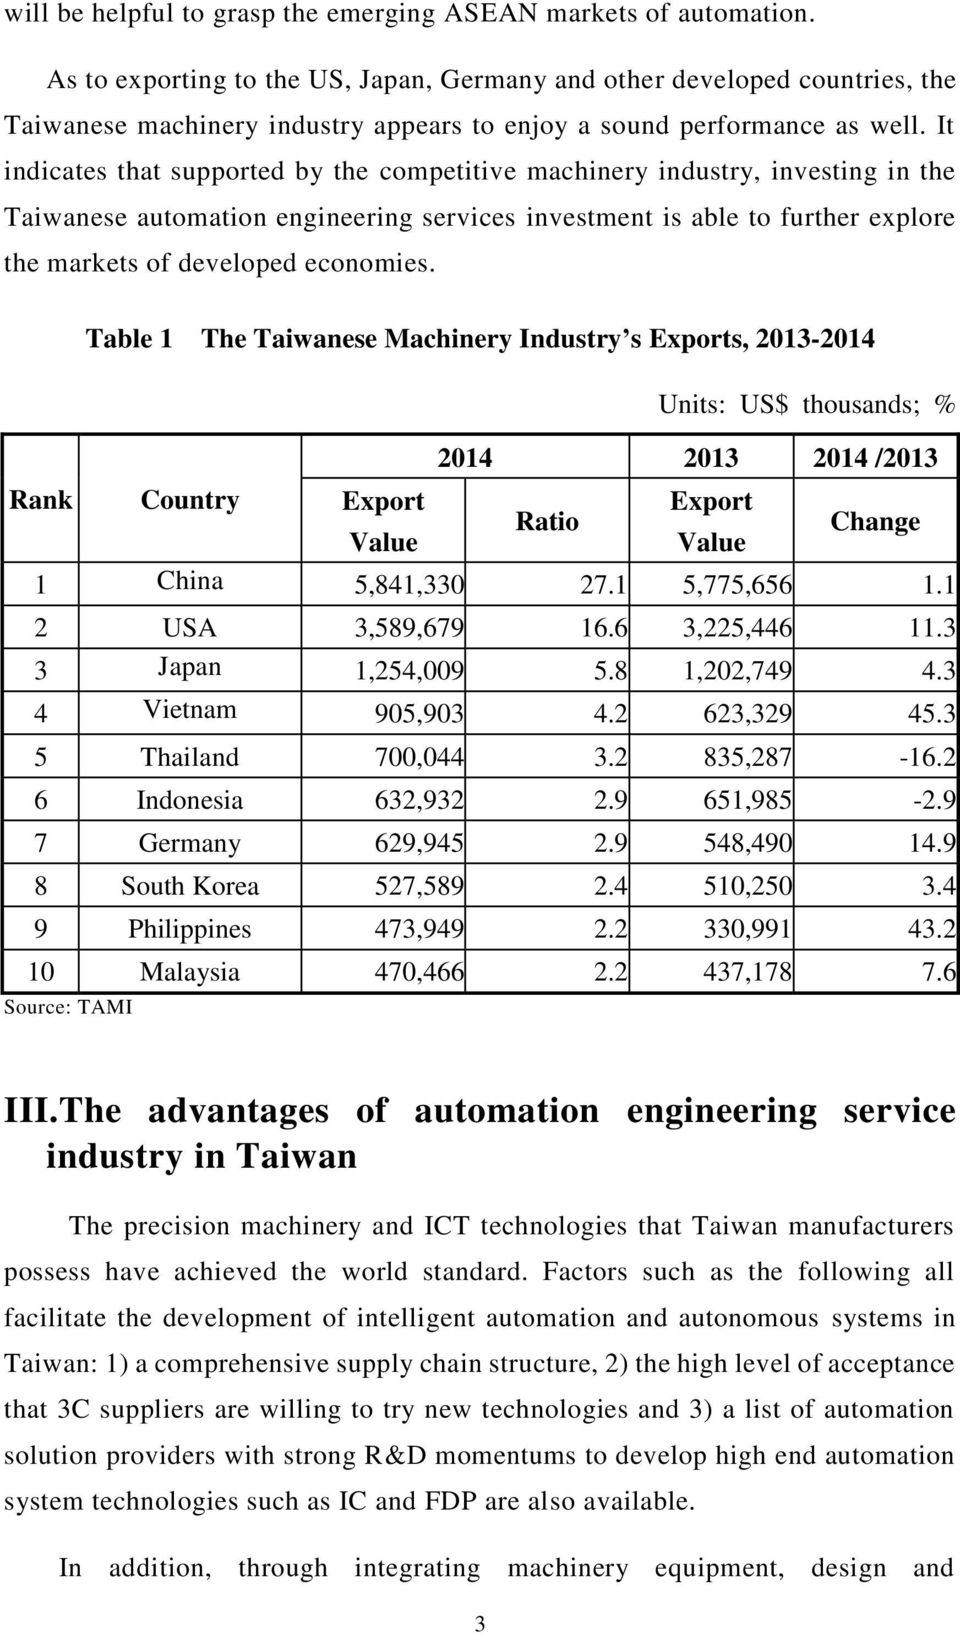 It indicates that supported by the competitive machinery industry, investing in the Taiwanese automation engineering services investment is able to further explore the markets of developed economies.